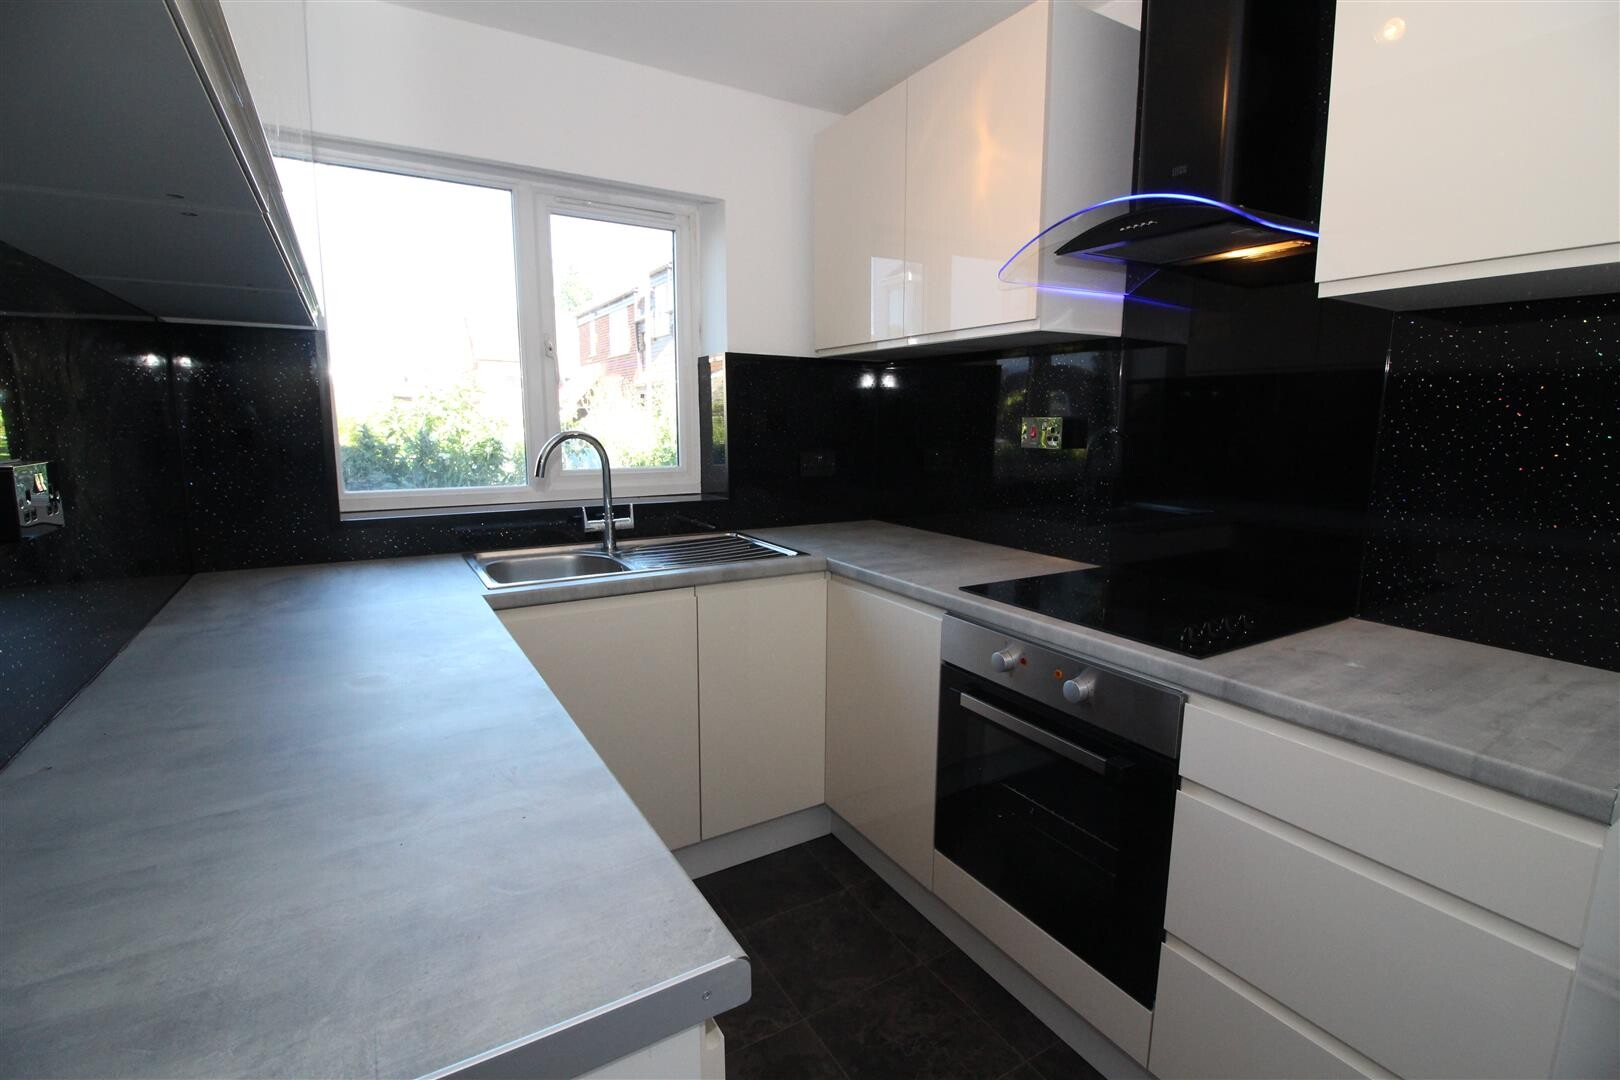 3 bedroom student house in Bowthorpe, Norwich